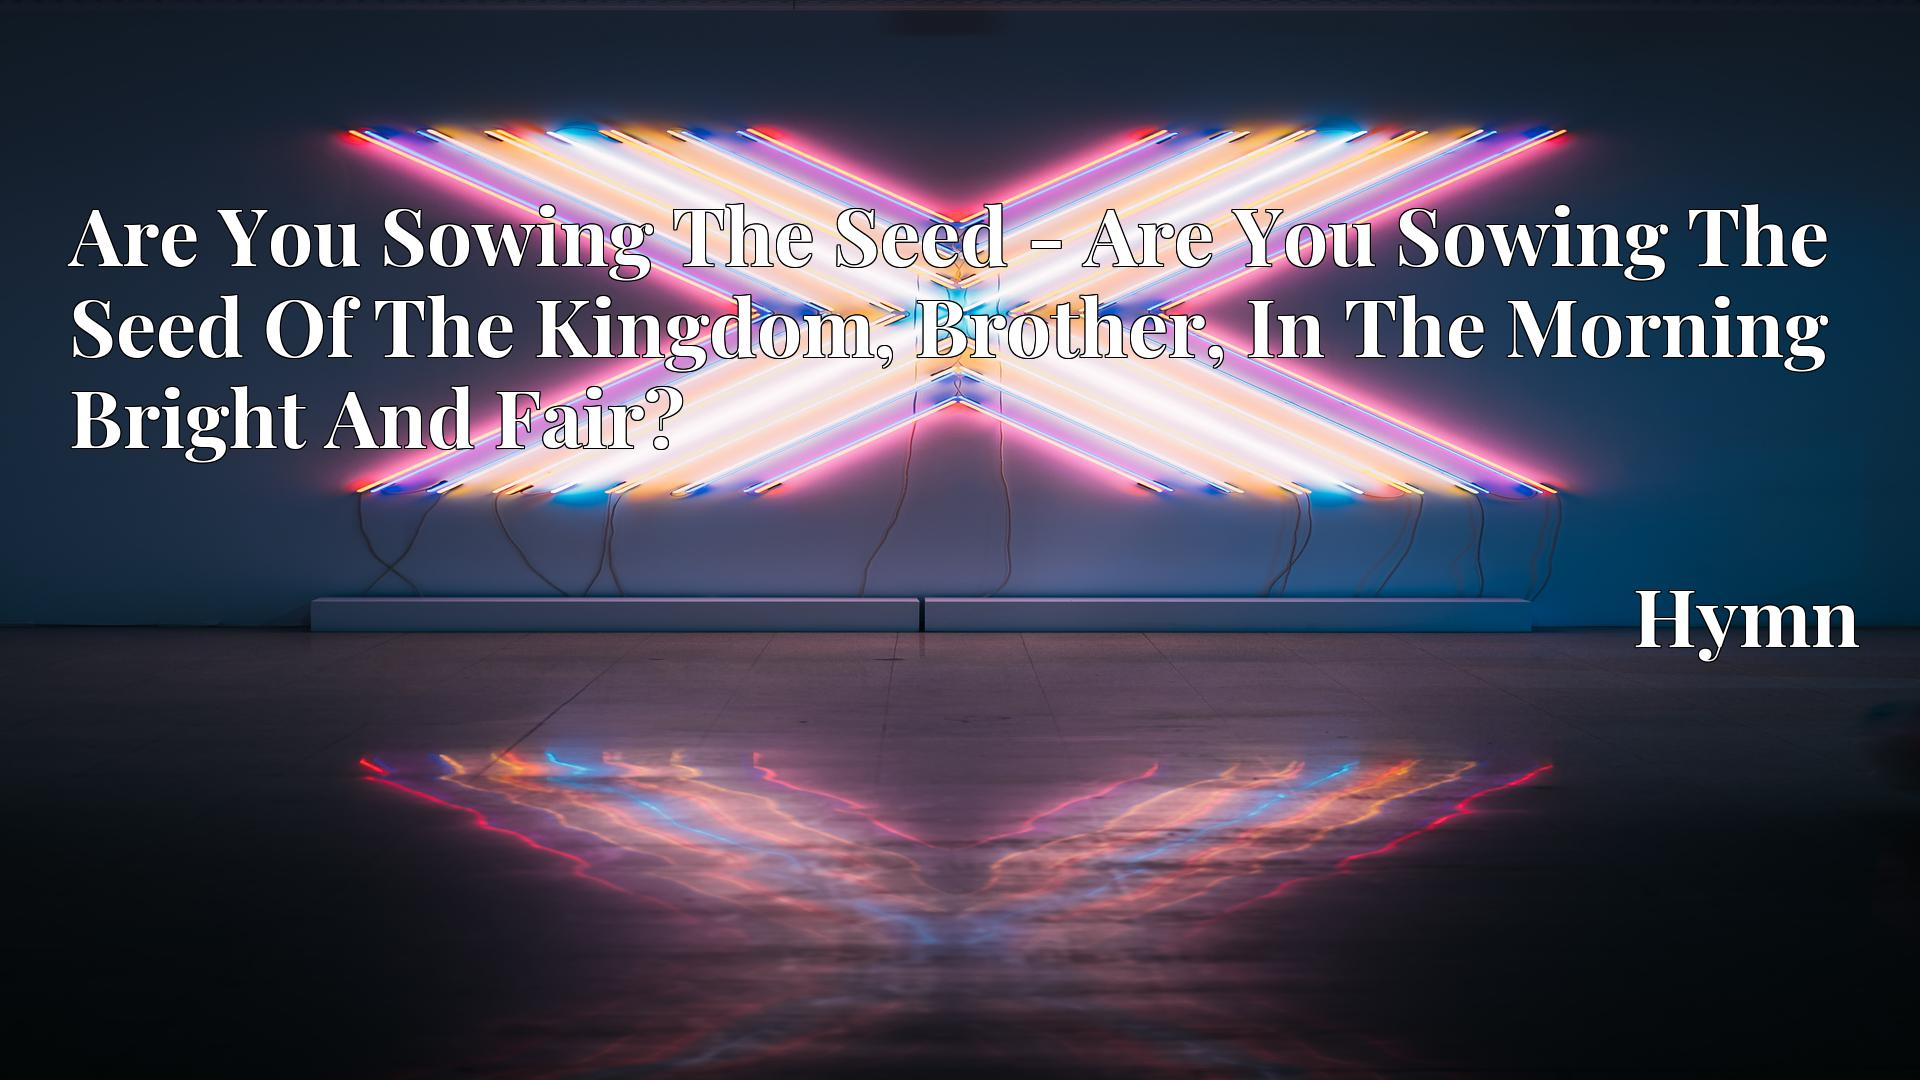 Are You Sowing The Seed - Are You Sowing The Seed Of The Kingdom, Brother, In The Morning Bright And Fair? - Hymn